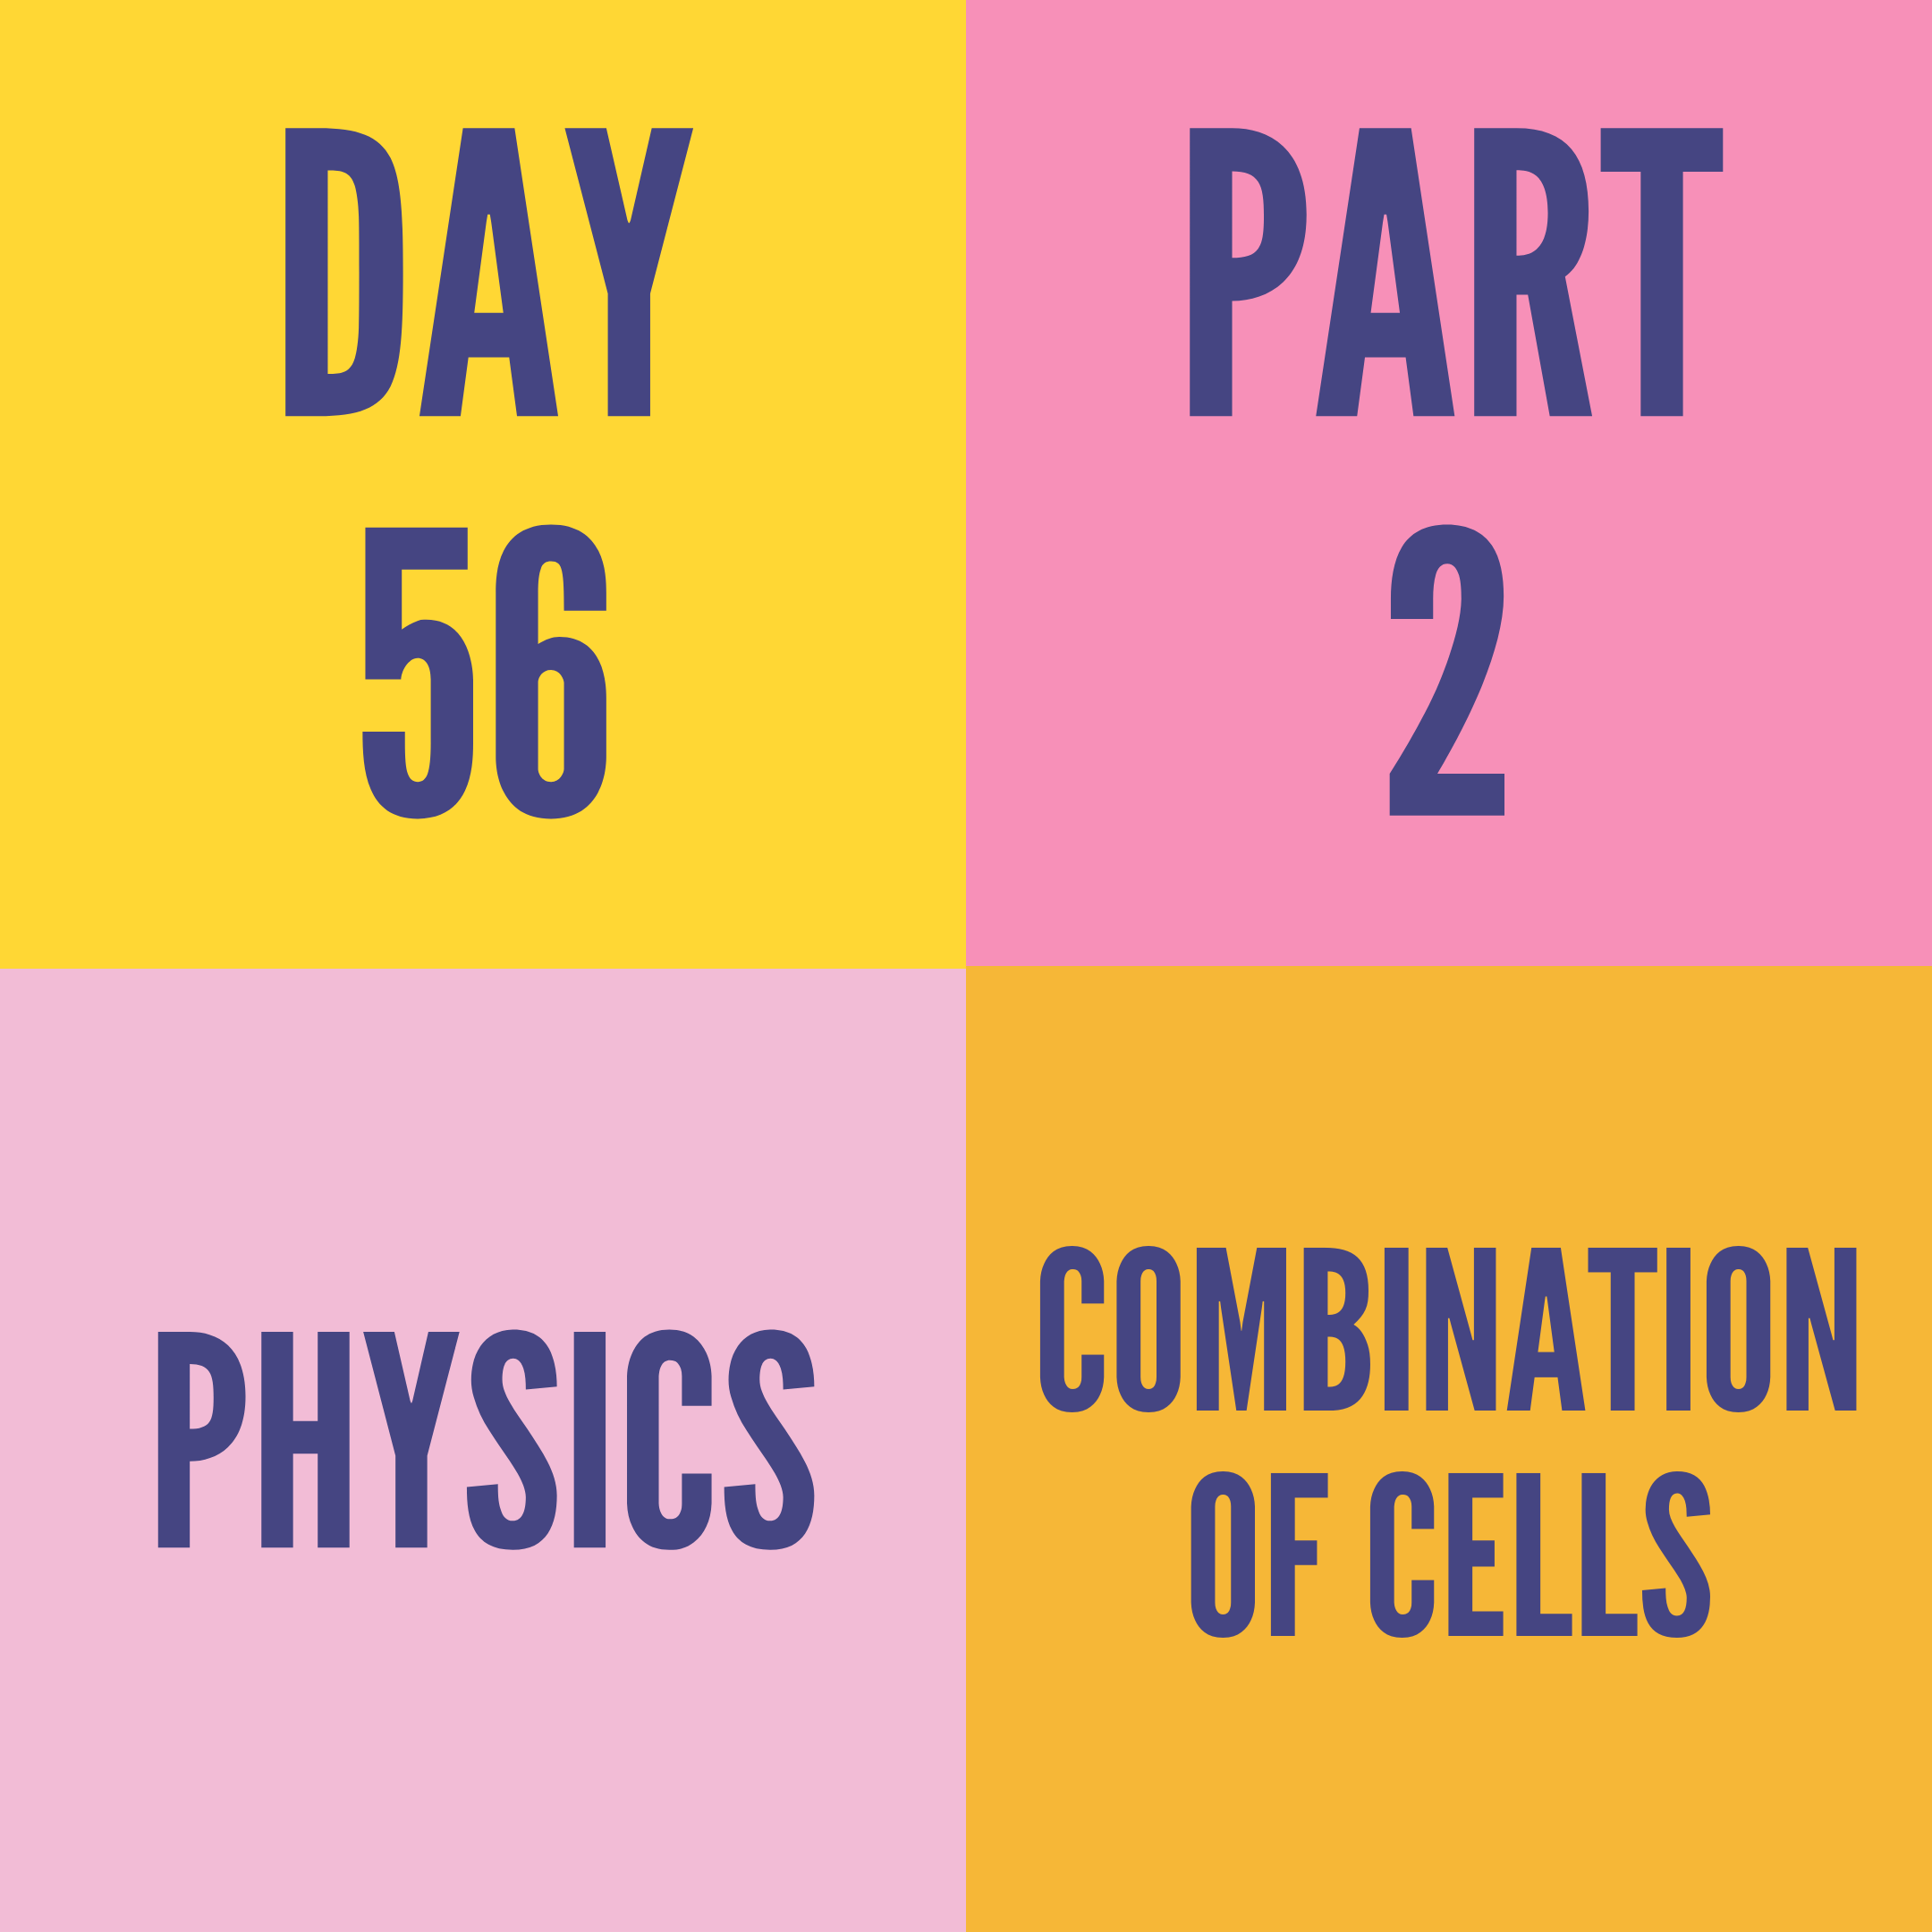 DAY-56 PART-2  COMBINATION OF CELLS